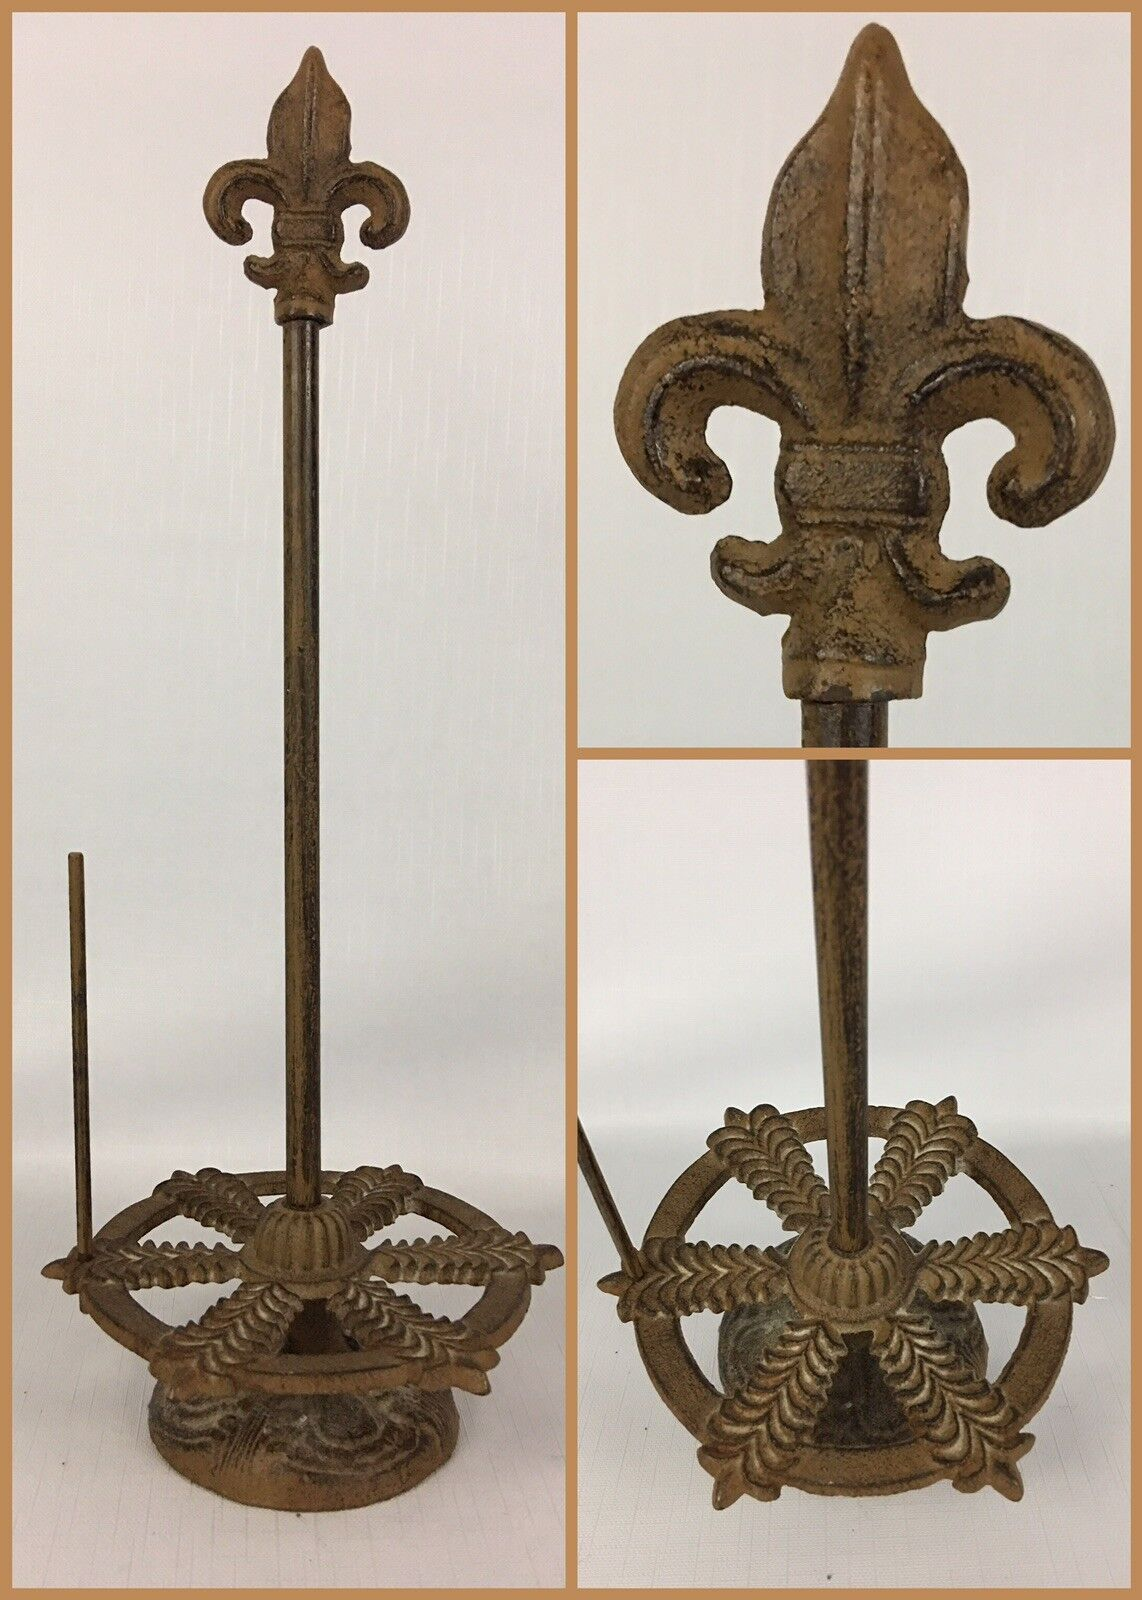 Vintage Antique Iron Metal PAPER TOWEL HOLDER - French Fleur-De-Lis Flower Lilly